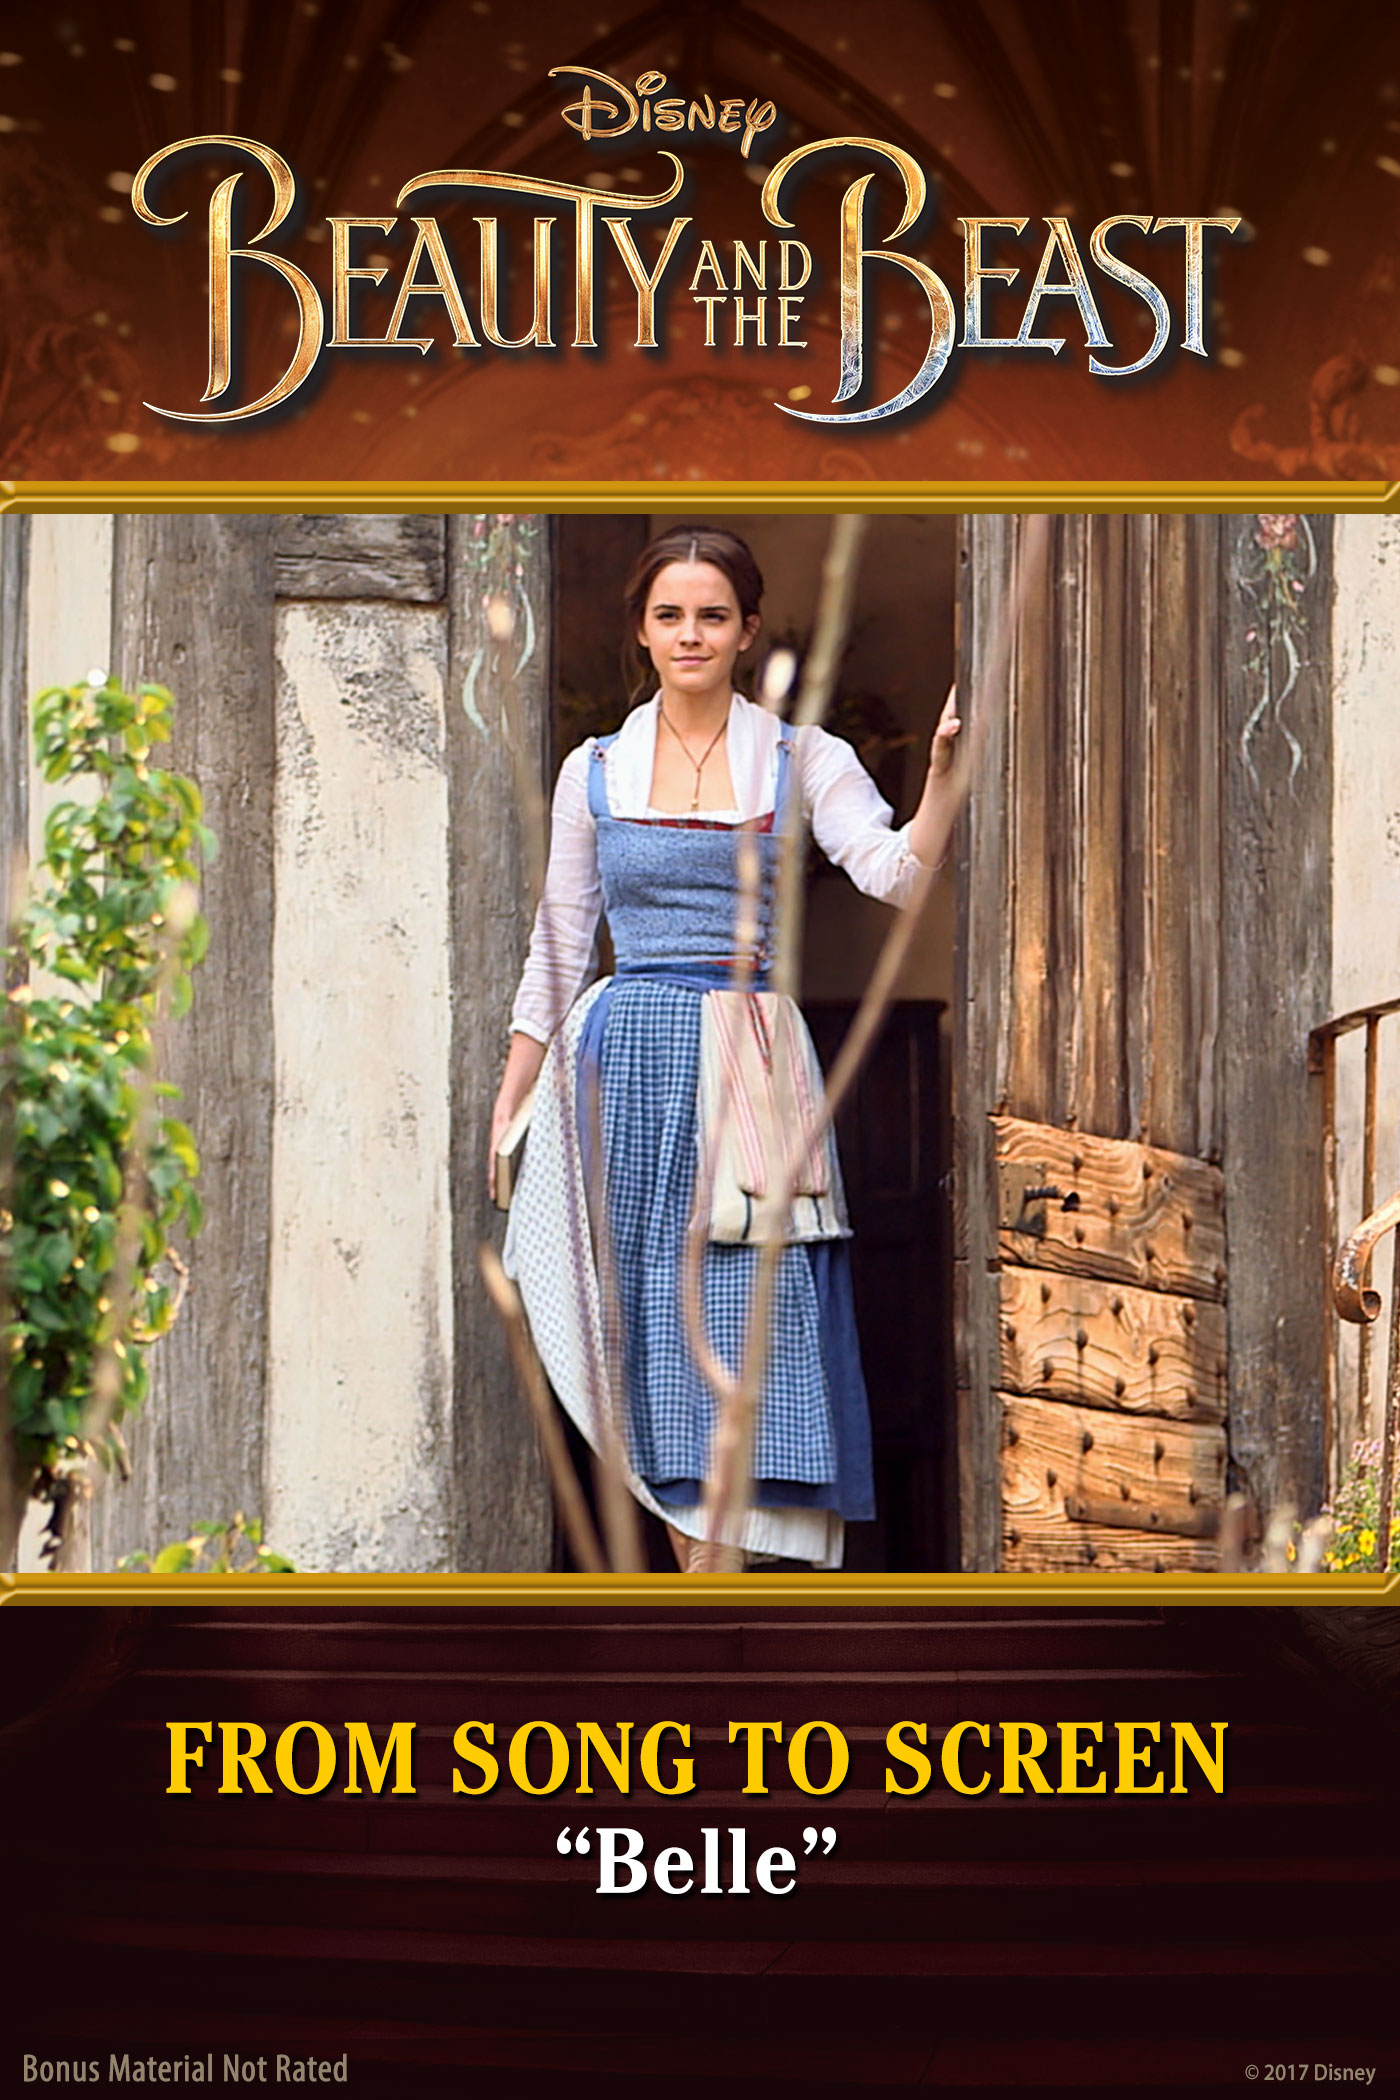 From Song to Screen: Belle